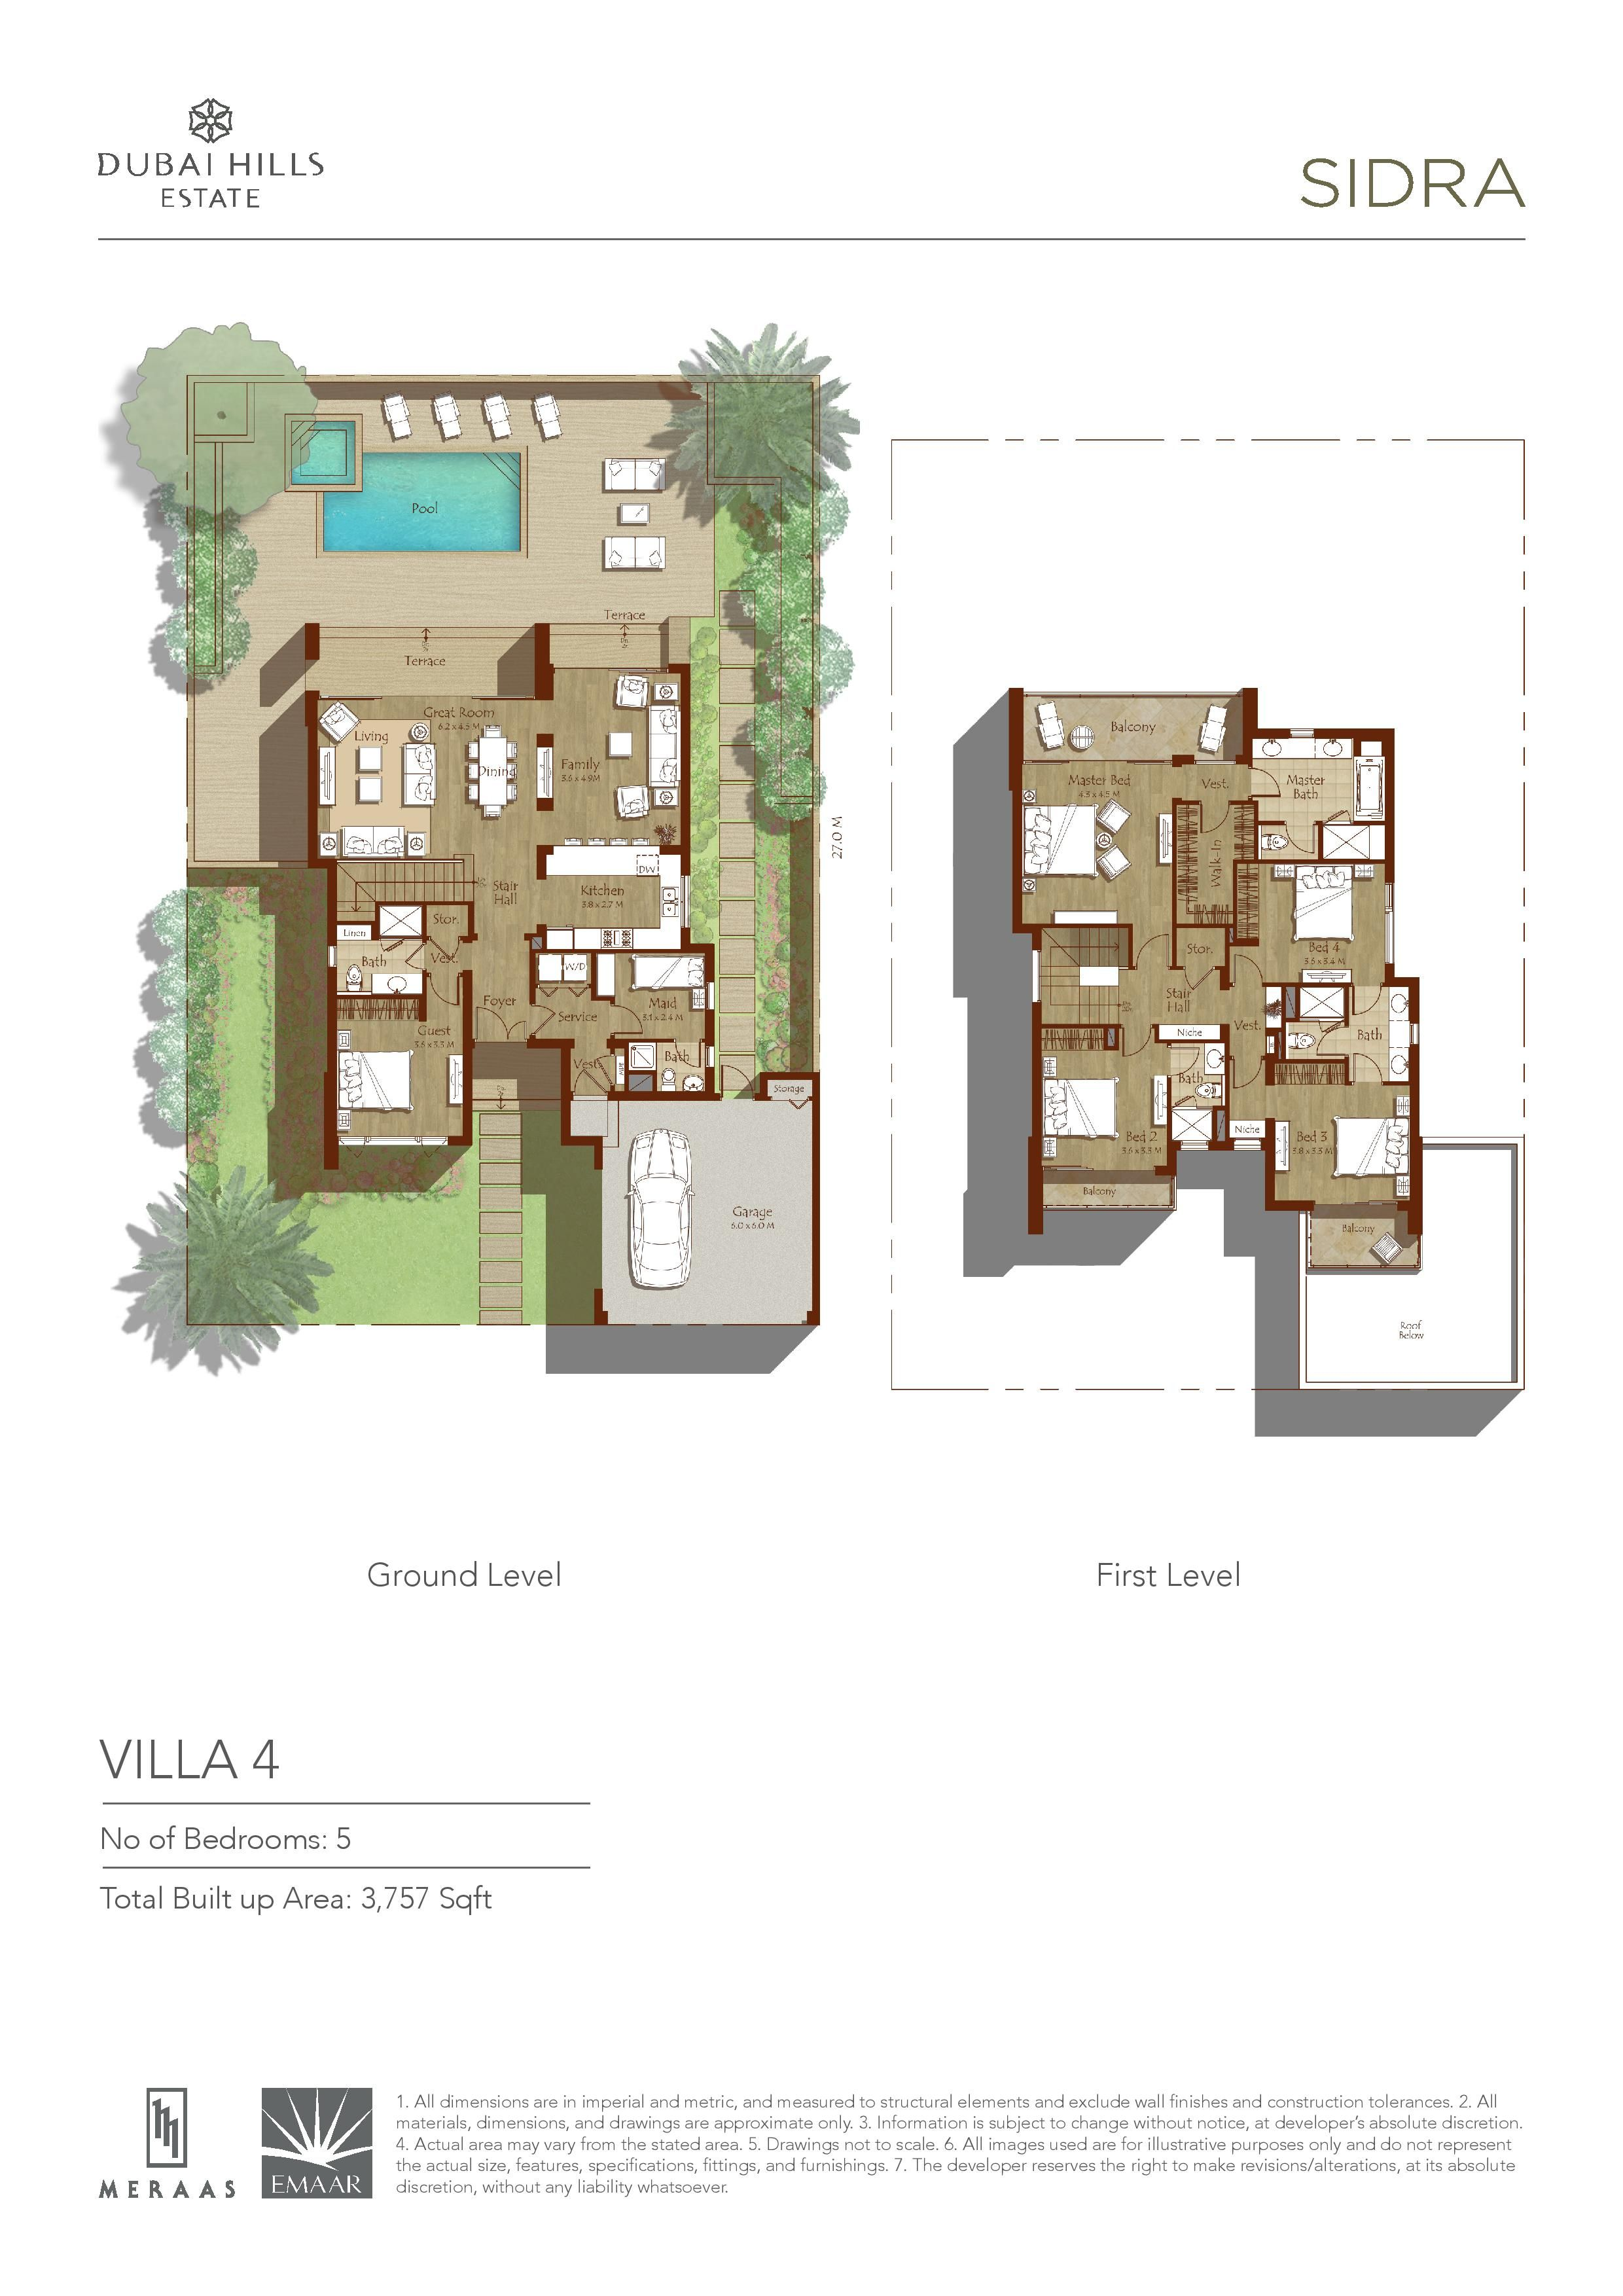 Sidra Villa Floor Plans Dubai Hills Estates Villa Design Diy House Plans Floor Plans